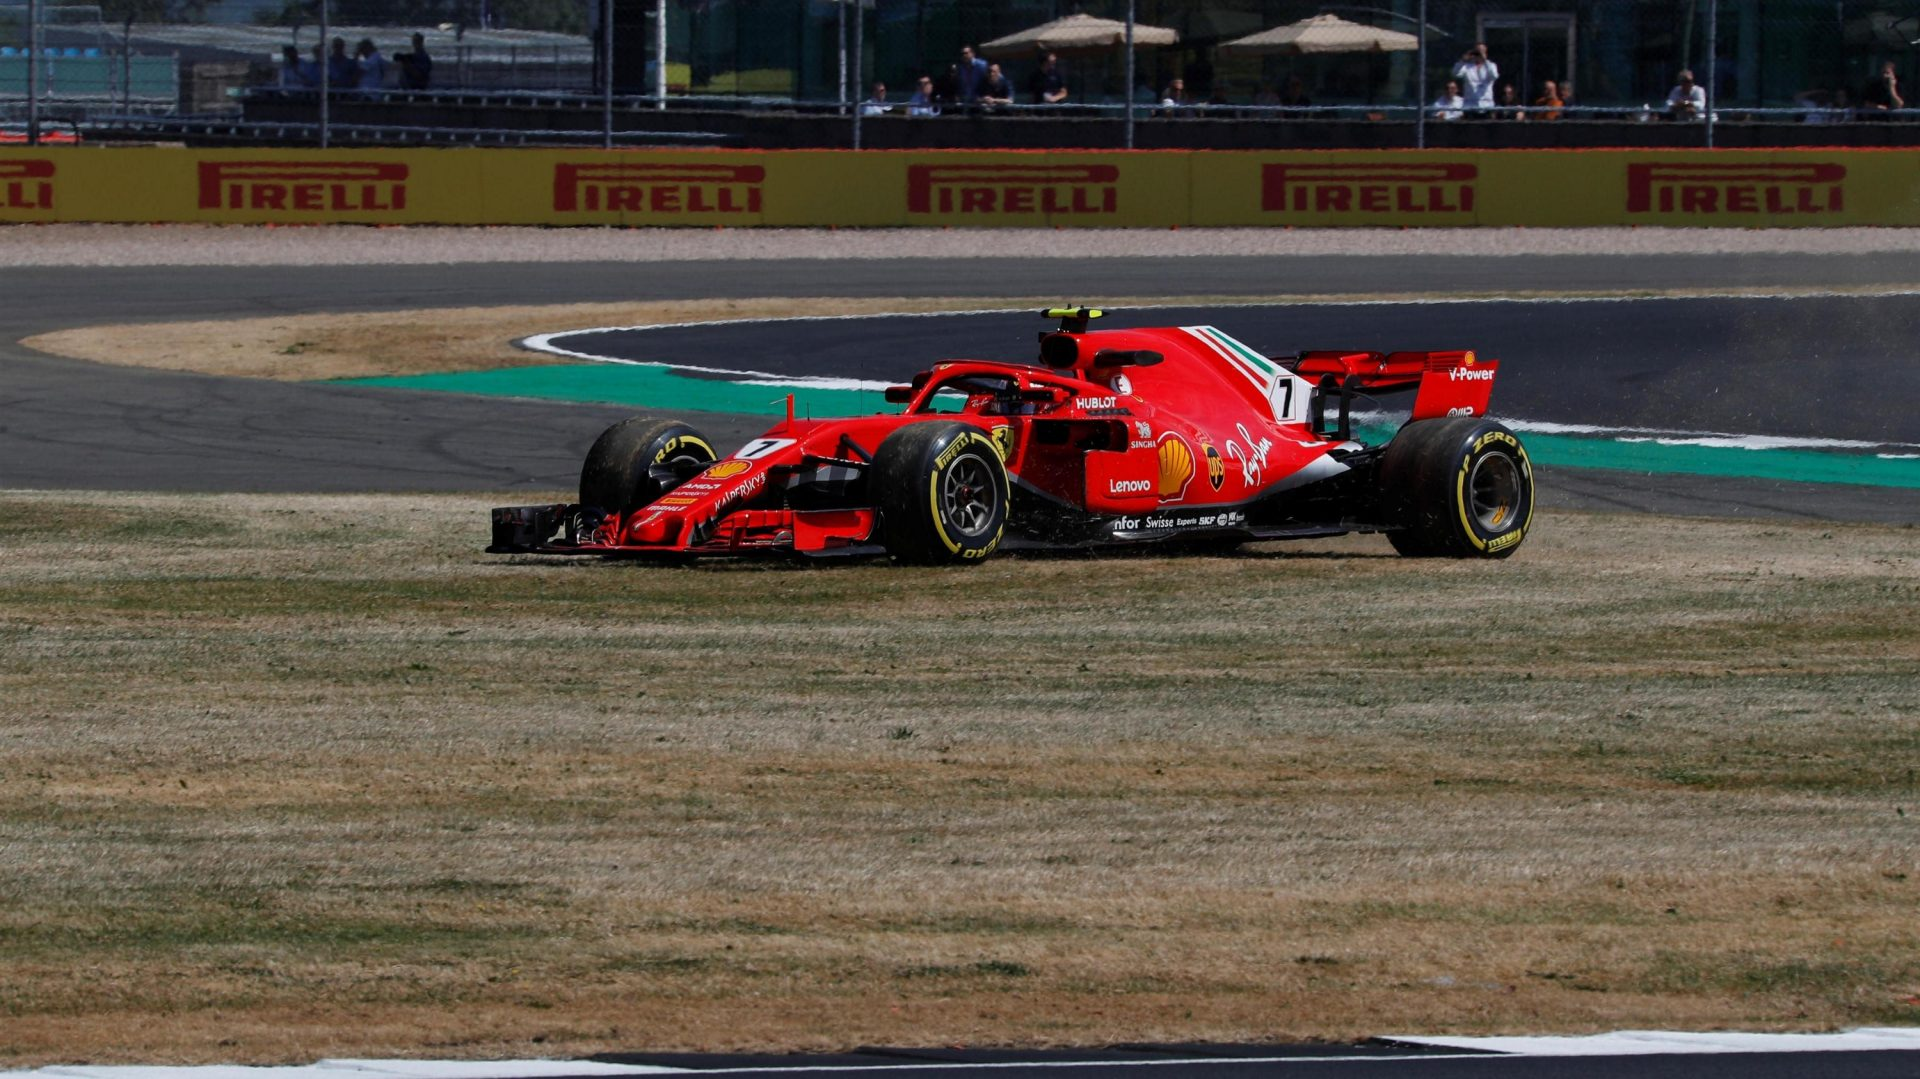 https://www.formula1.com/content/fom-website/en/latest/features/2018/7/gallery--the-best-images-from-great-britain/_jcr_content/featureContent/manual_gallery/image15.img.1920.medium.jpg/1530873239710.jpg